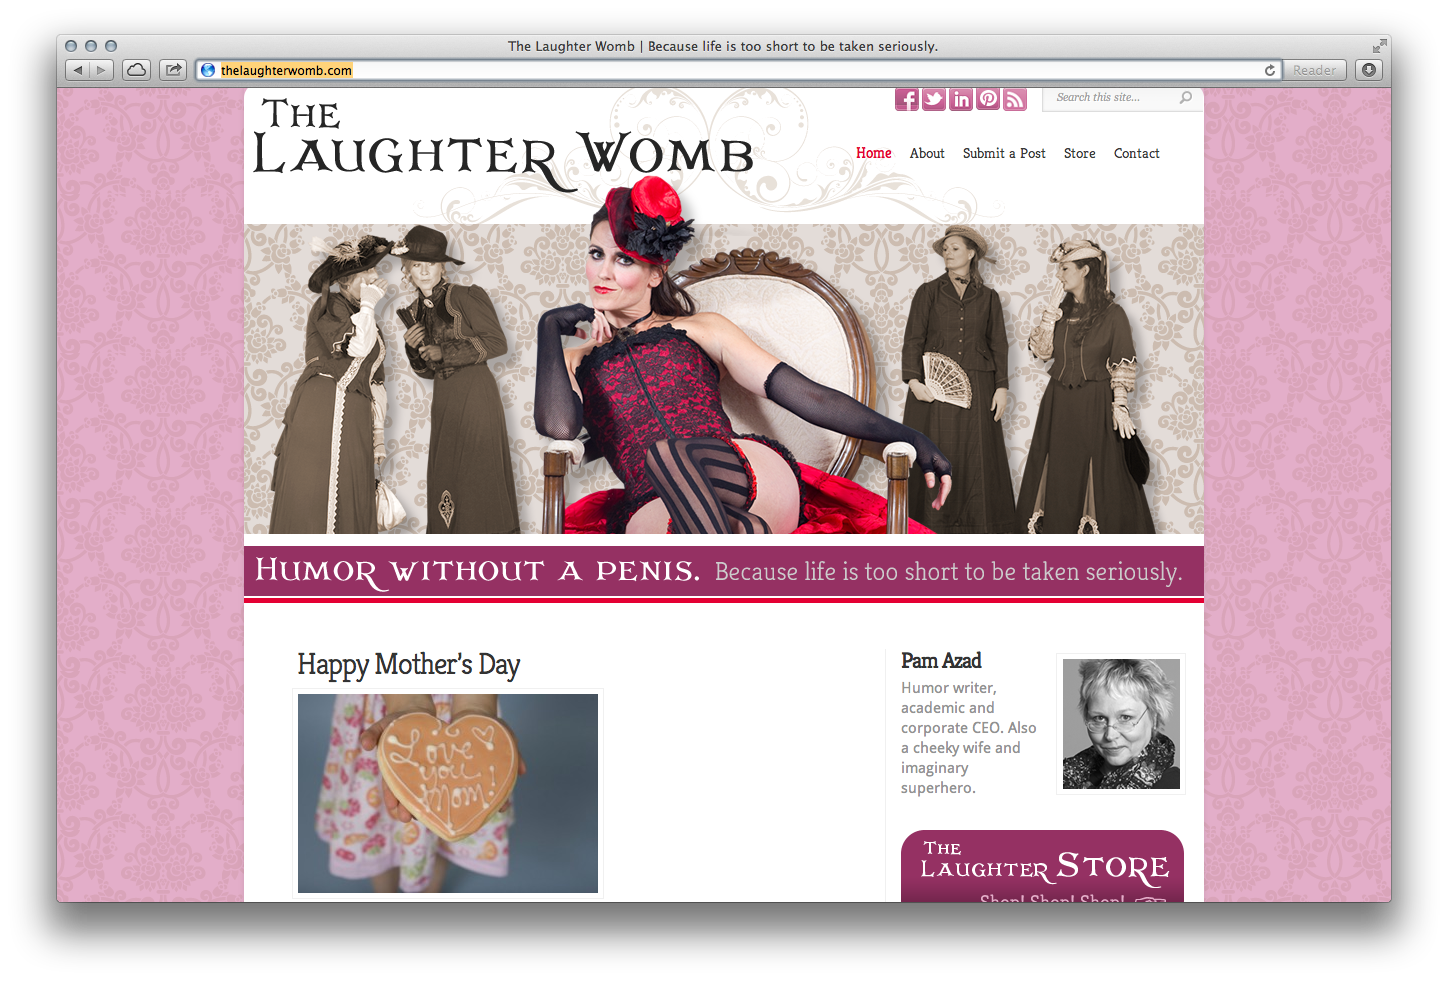 the laughter womb home page